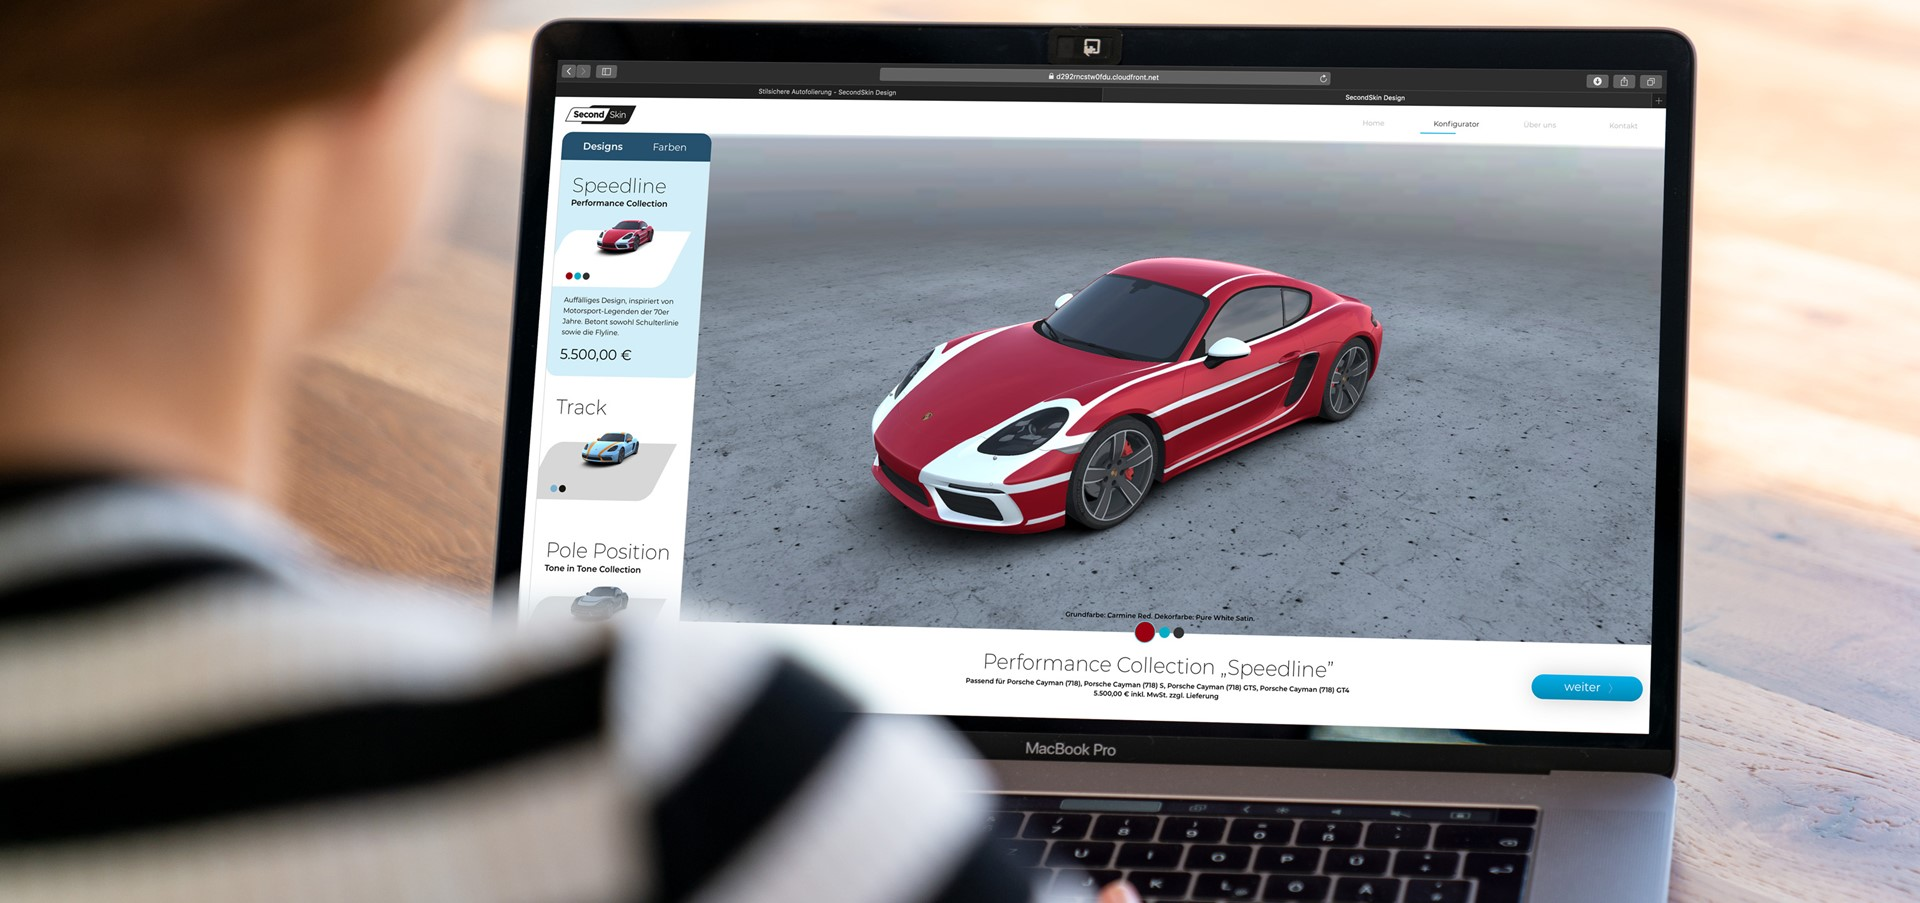 Porsche Digital launches online platform